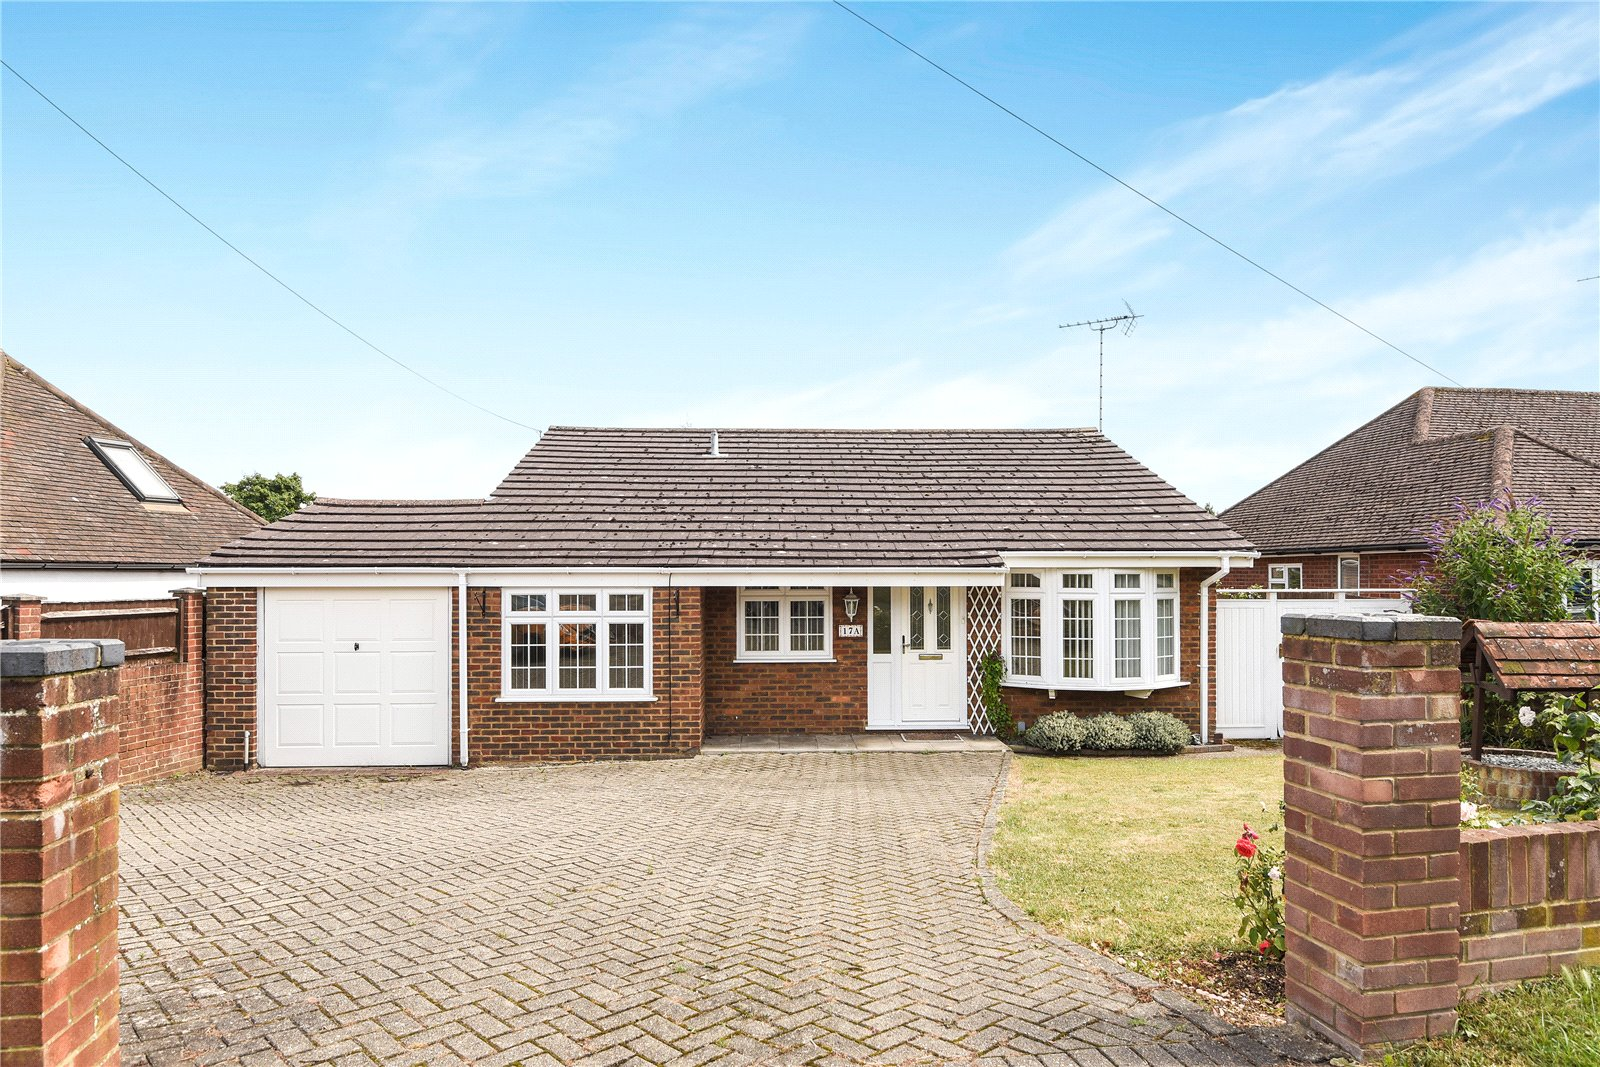 3 Bedrooms Detached Bungalow for sale in Gipsy Lane, Earley, Reading, Berkshire, RG6